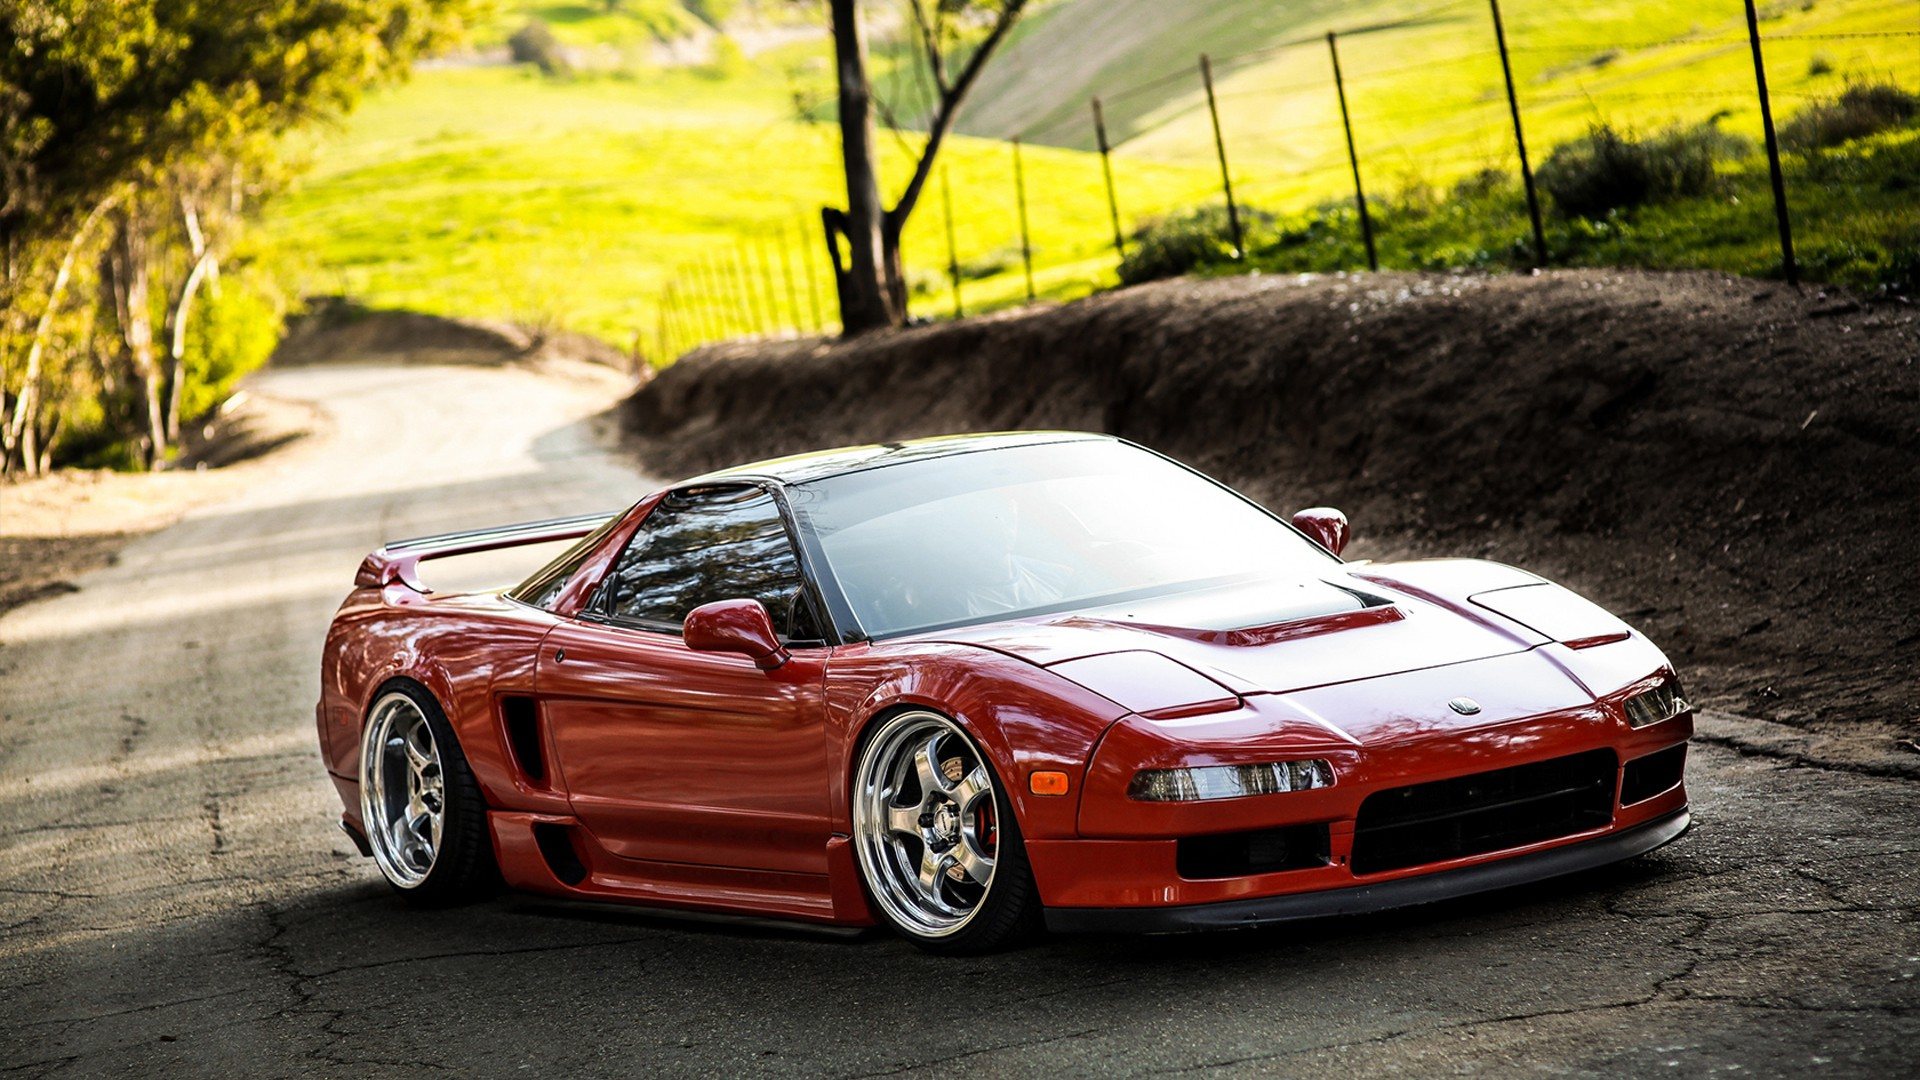 Honda NSX Wallpapers and Background Images   stmednet 1920x1080